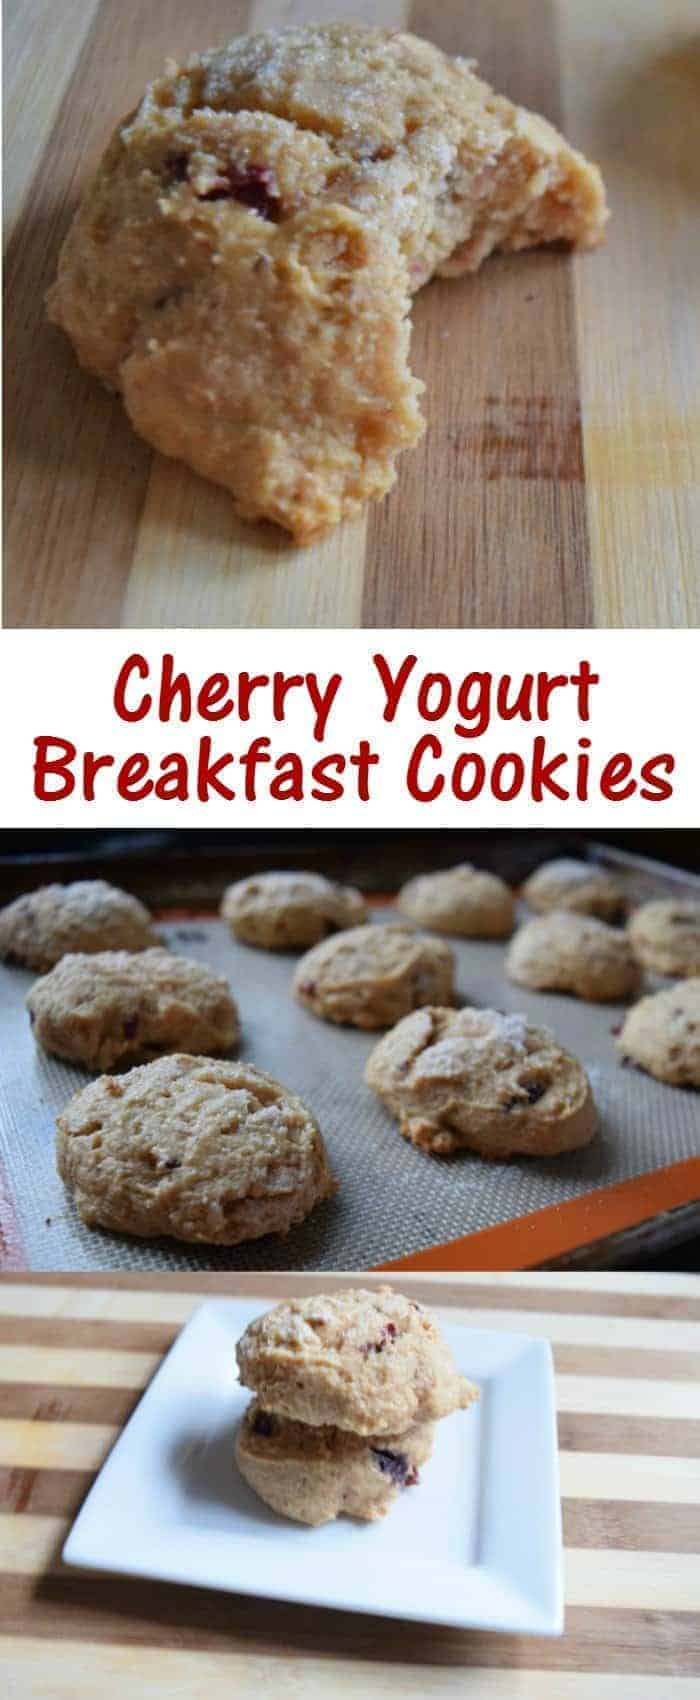 This recipe for cherry yogurt breakfast cookies is a perfect protein packed meal or snack. It's easy to make and has less sugar than you'd expect. Perfect for a treat!